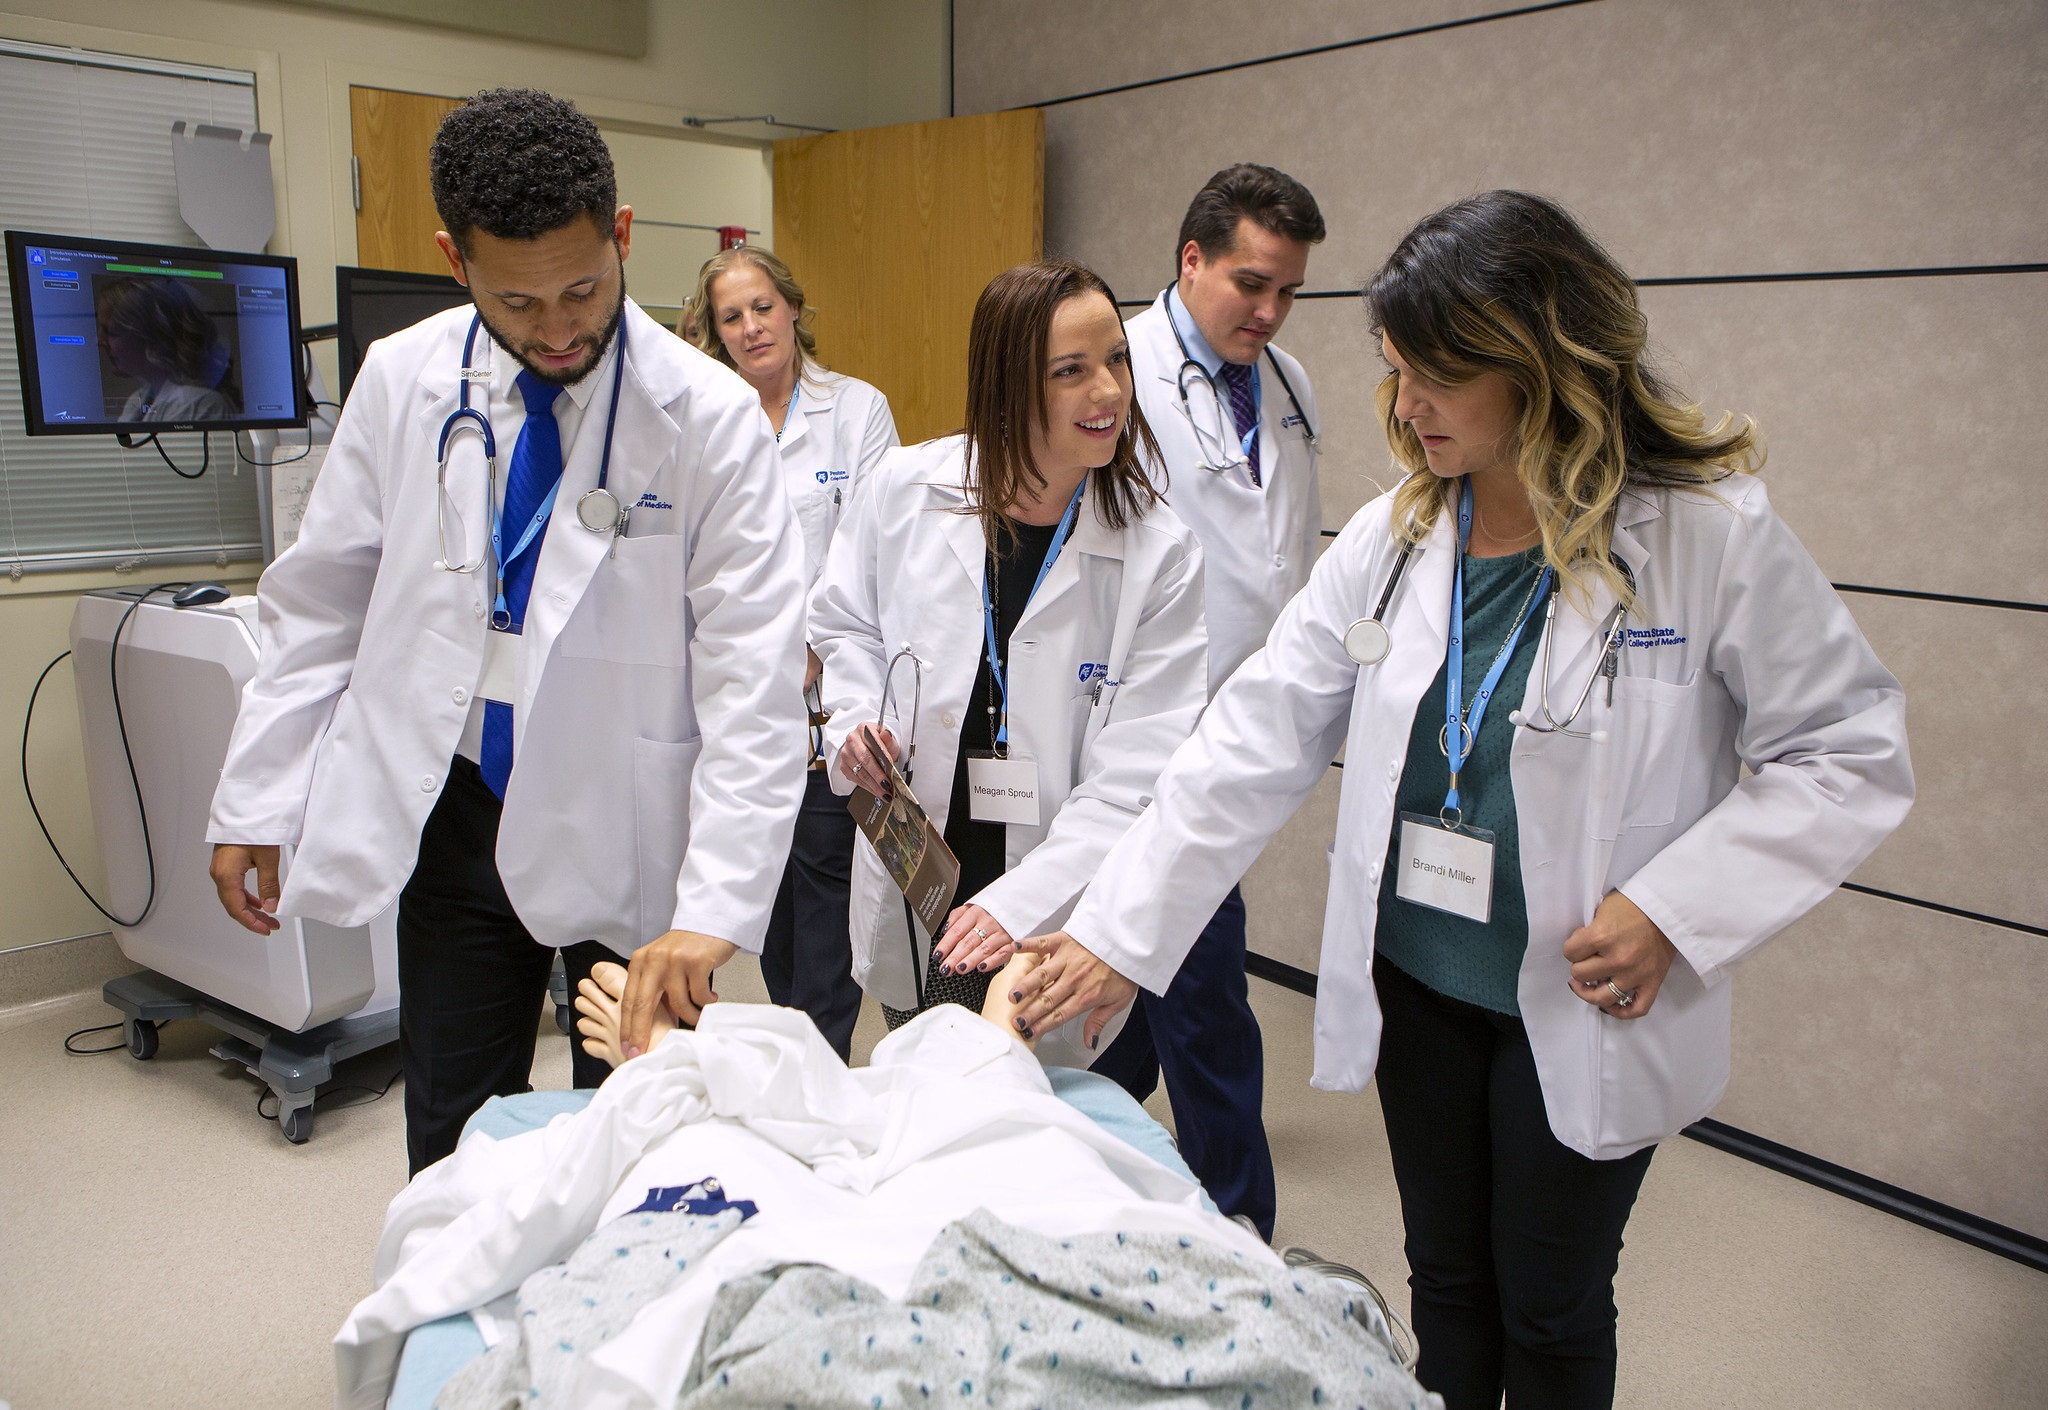 A man and two women touch the feet of a mannequin that is lying on a table. Behind them a woman and man stand. All five are wearing white lab coats. Behind them is a cart with two monitors and a door.